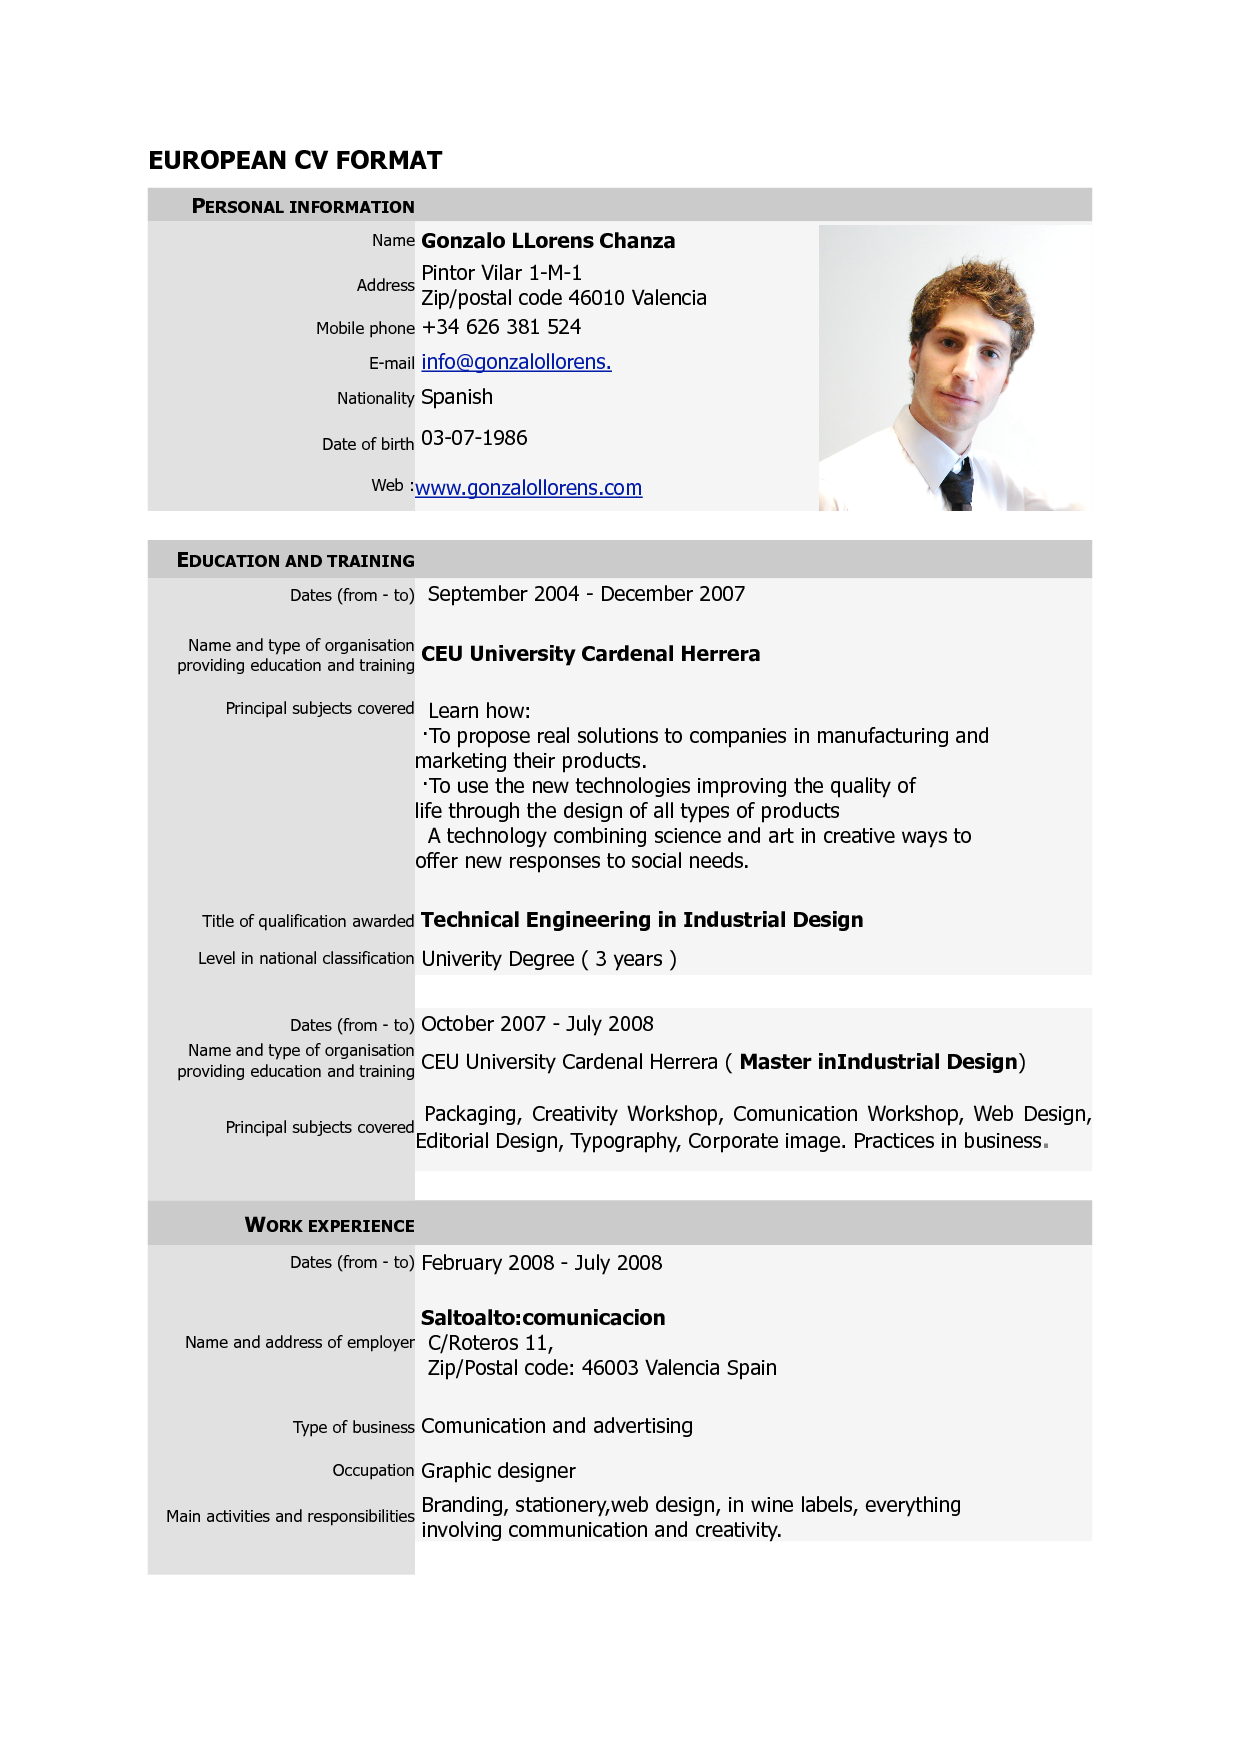 Microsoft Resume Template Download Alluring Free Download Cv Europass Pdf Europass Home European Cv Format Pdf